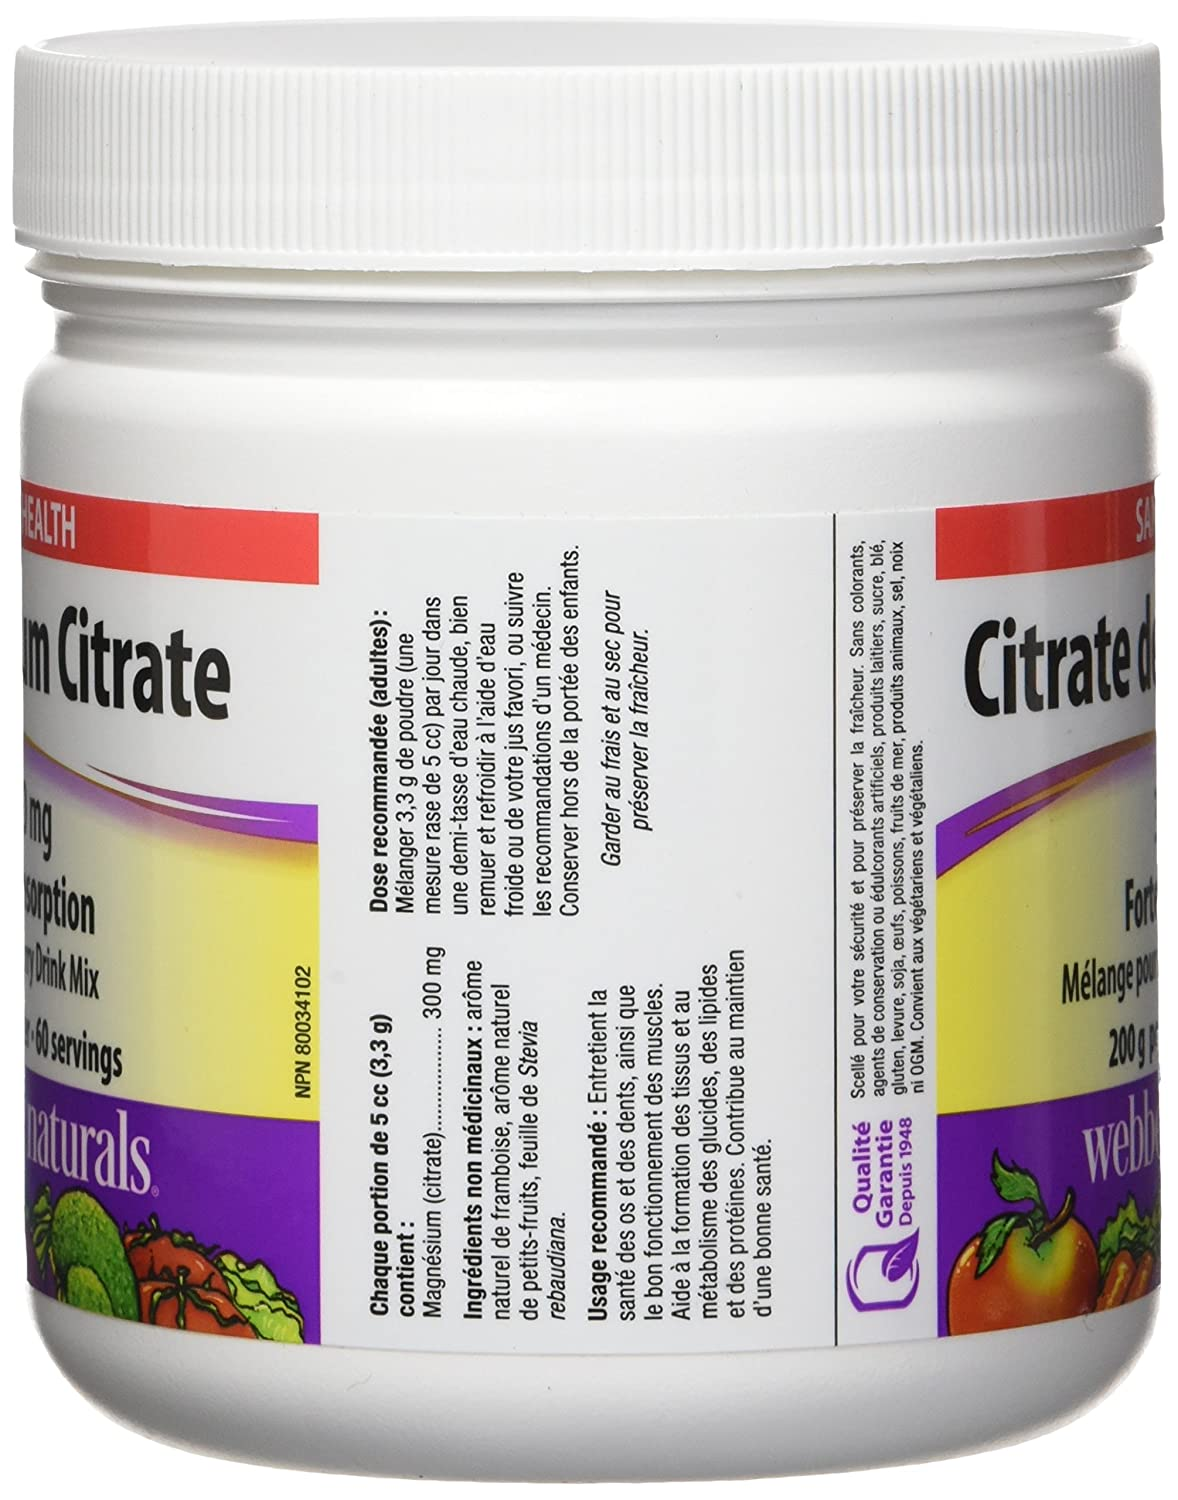 Amazon.com: Webber Naturals Magnesium Citrate Powder 300 mg, 200g: Health & Personal Care